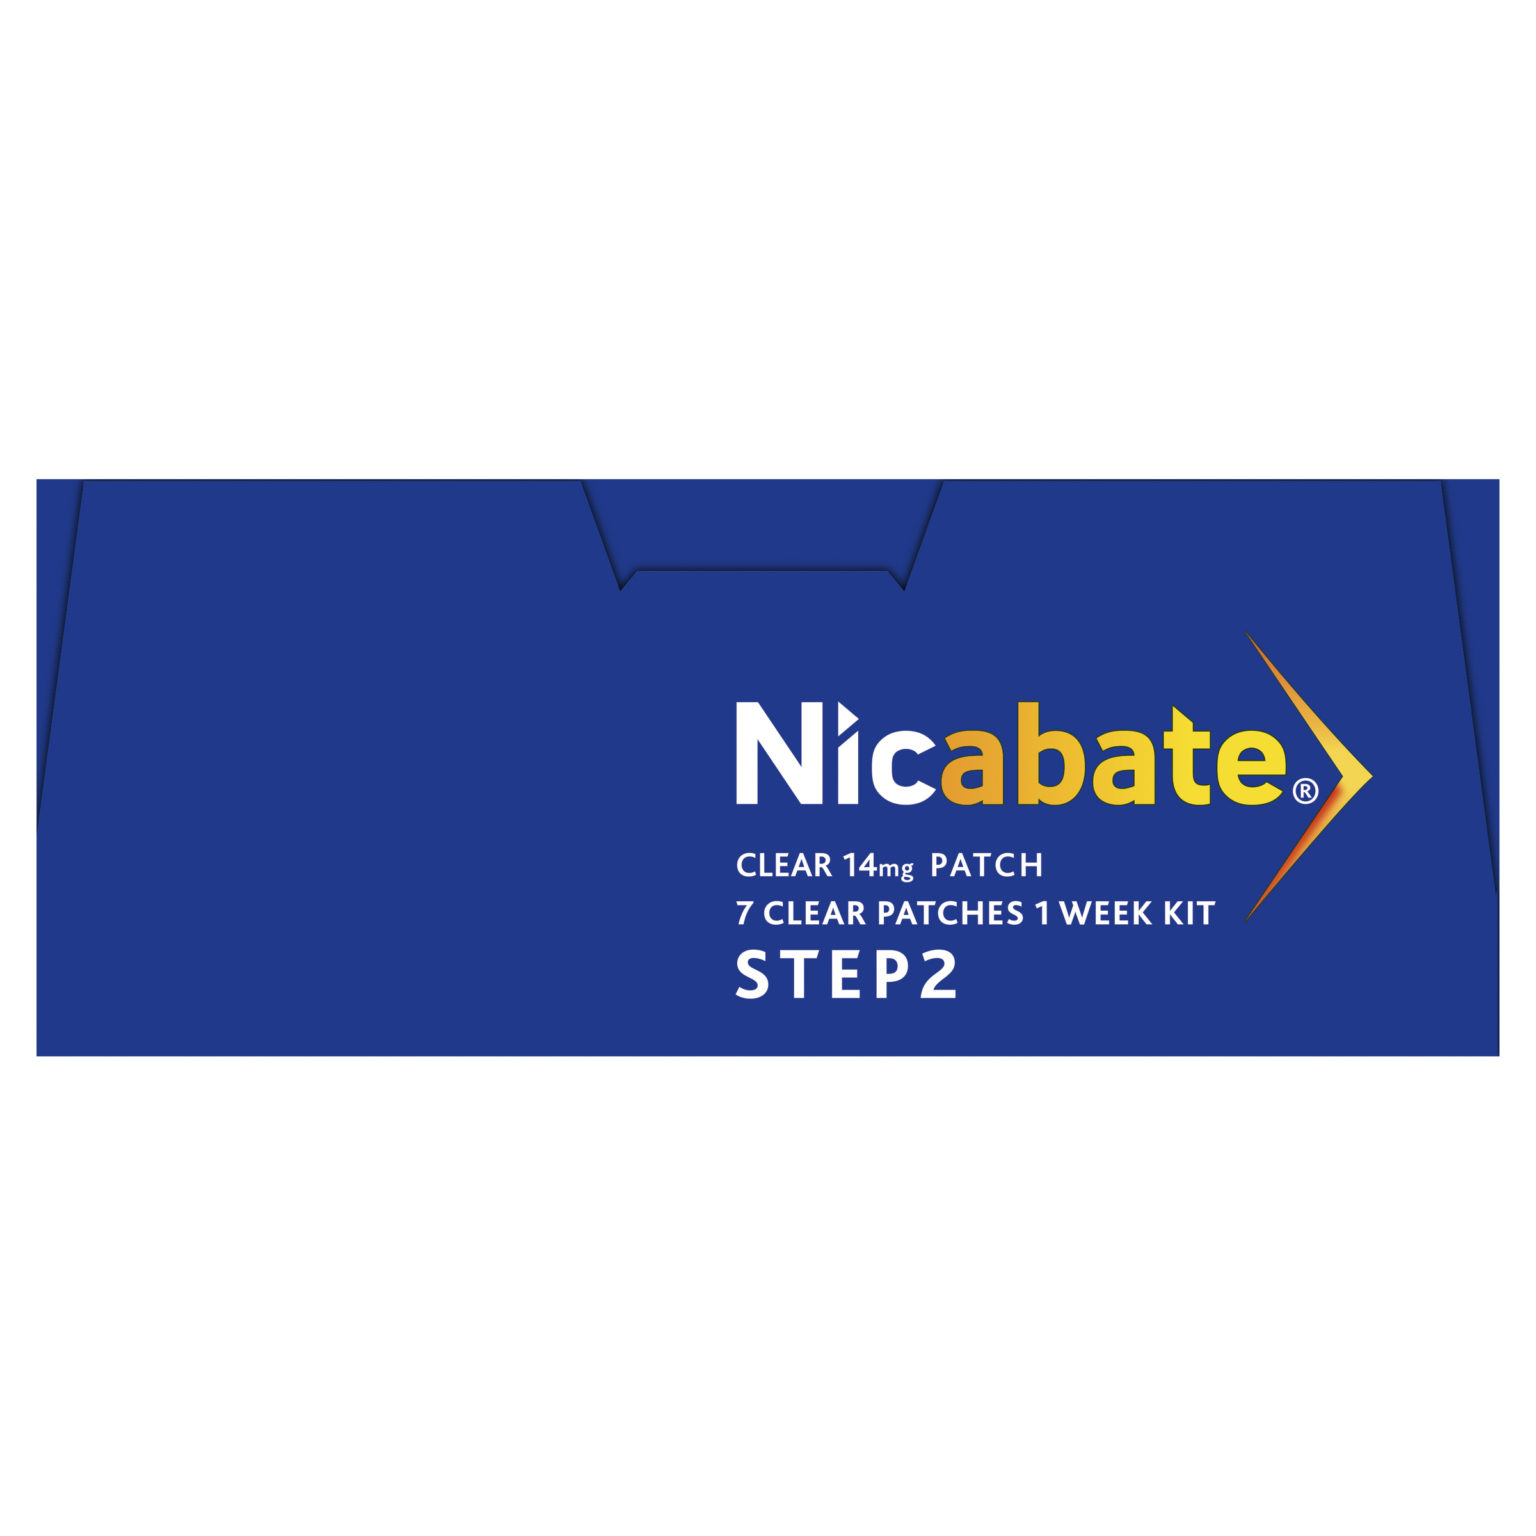 Nicabate Clear Patch Quit Smoking Step 1 21 mg 7 Patches